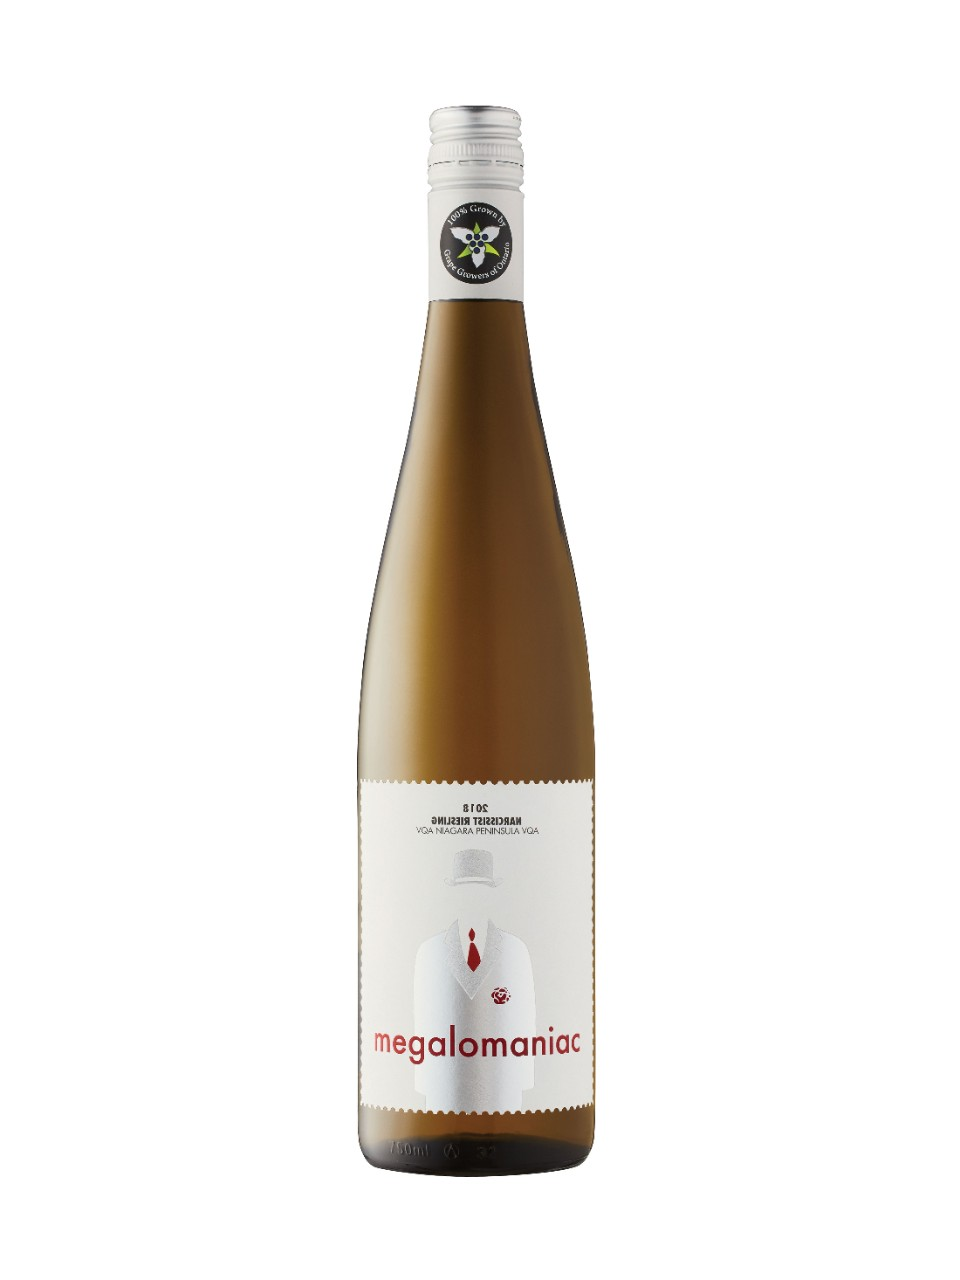 Riesling Narcissist Megalomaniac 2017